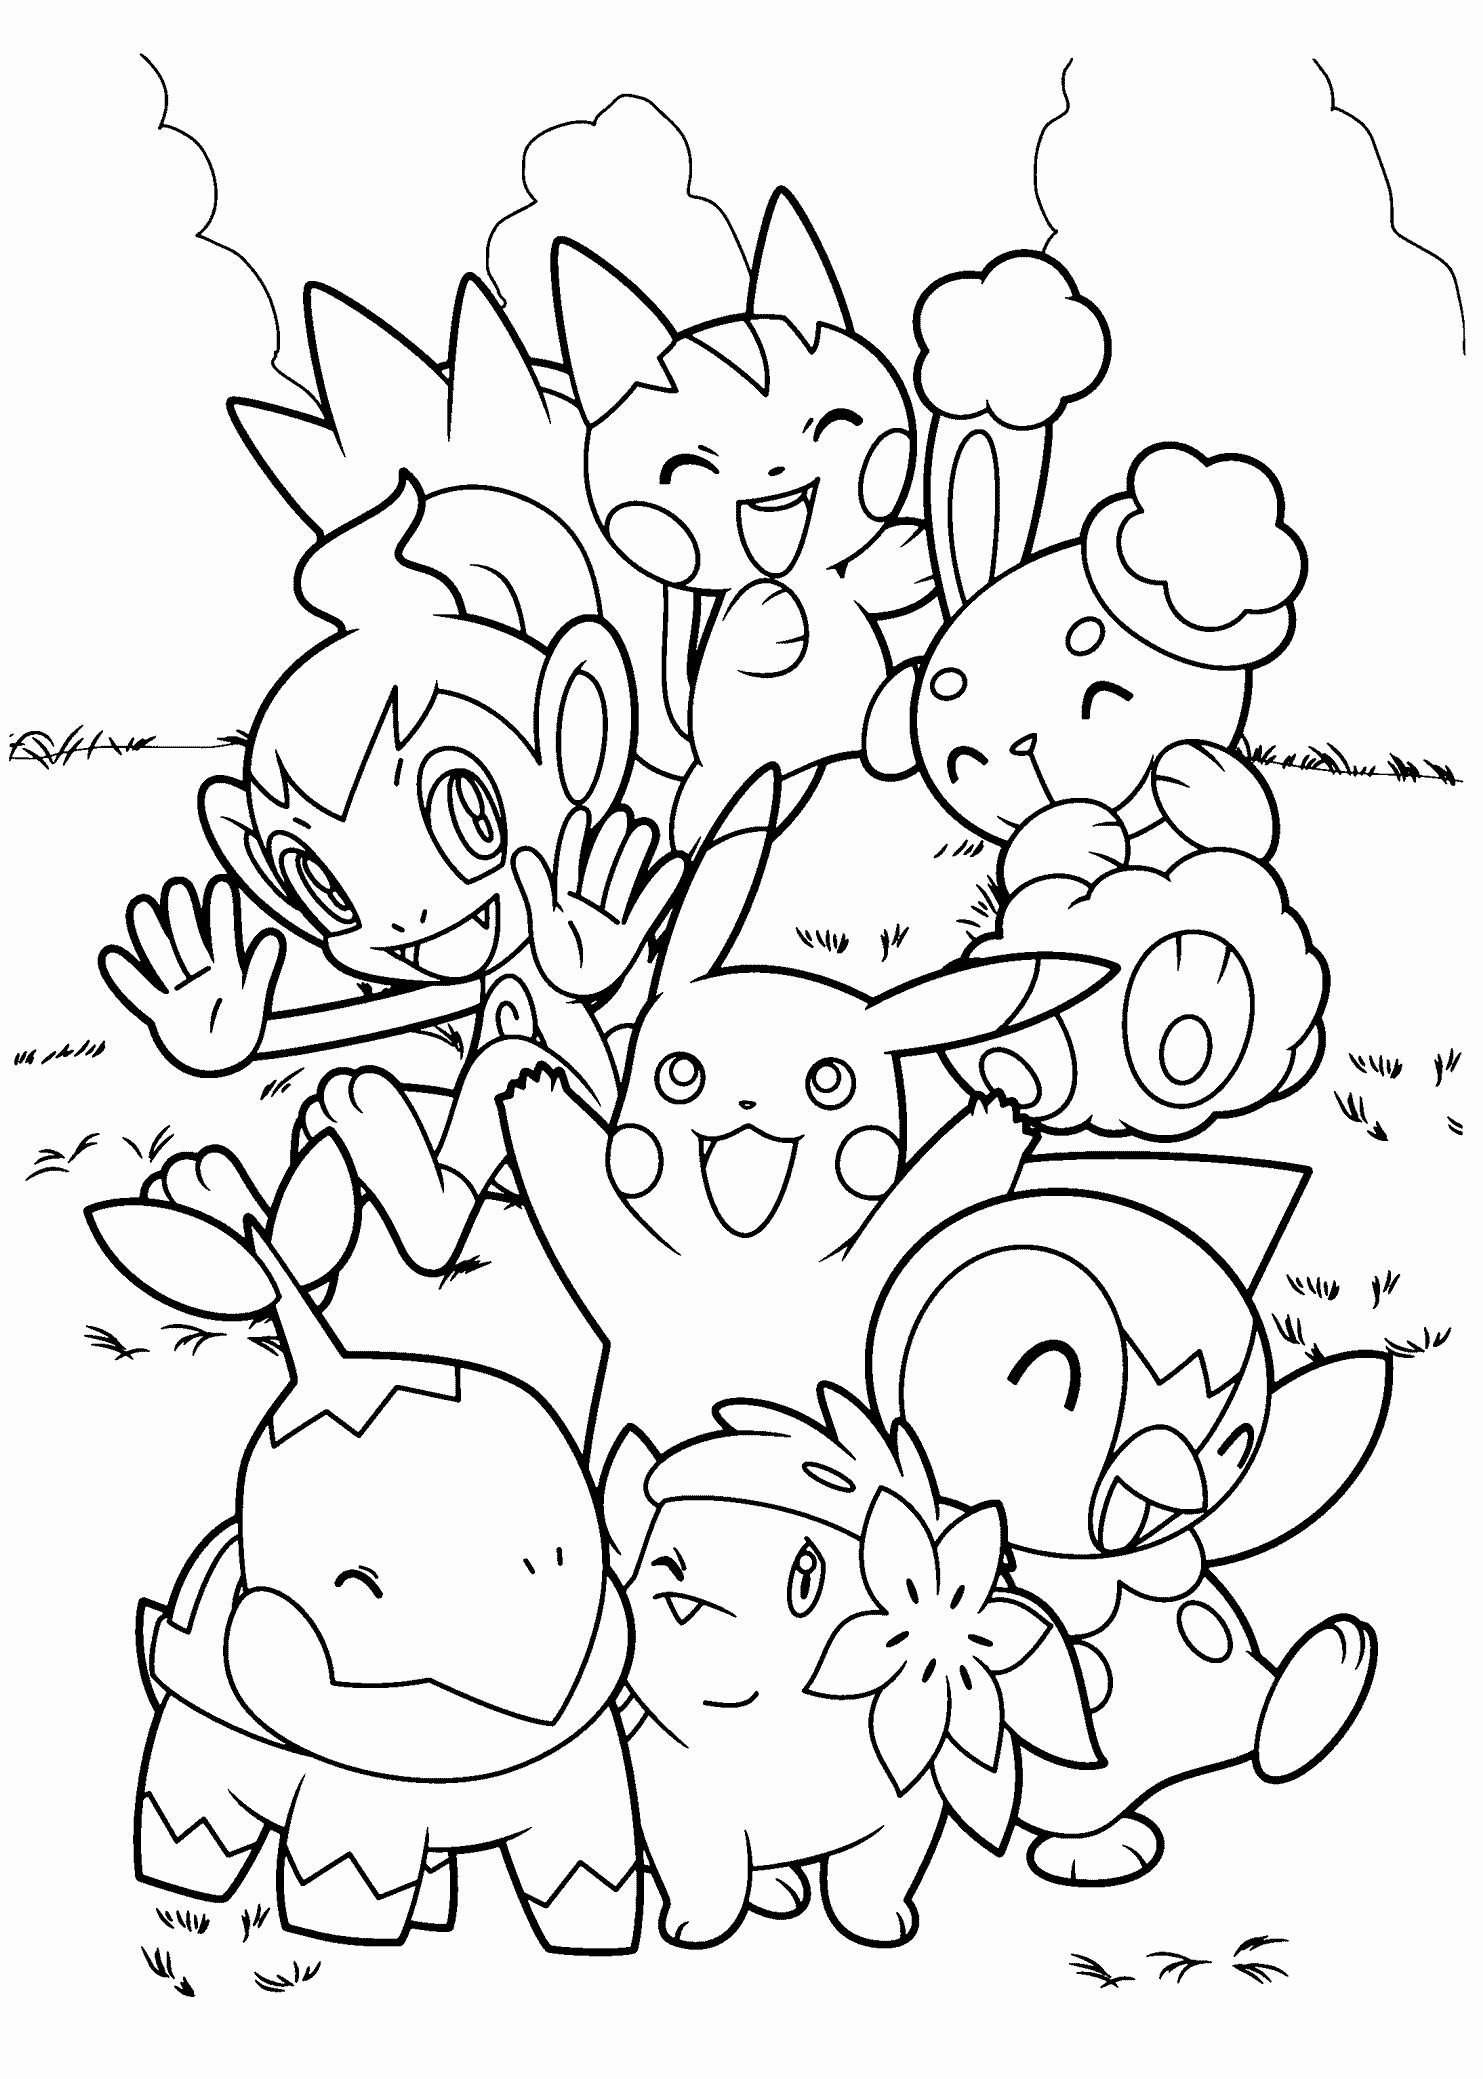 Pin By Esiri On Pokemon Fall Coloring Pages Pokemon Coloring Sheets Free Coloring Pages